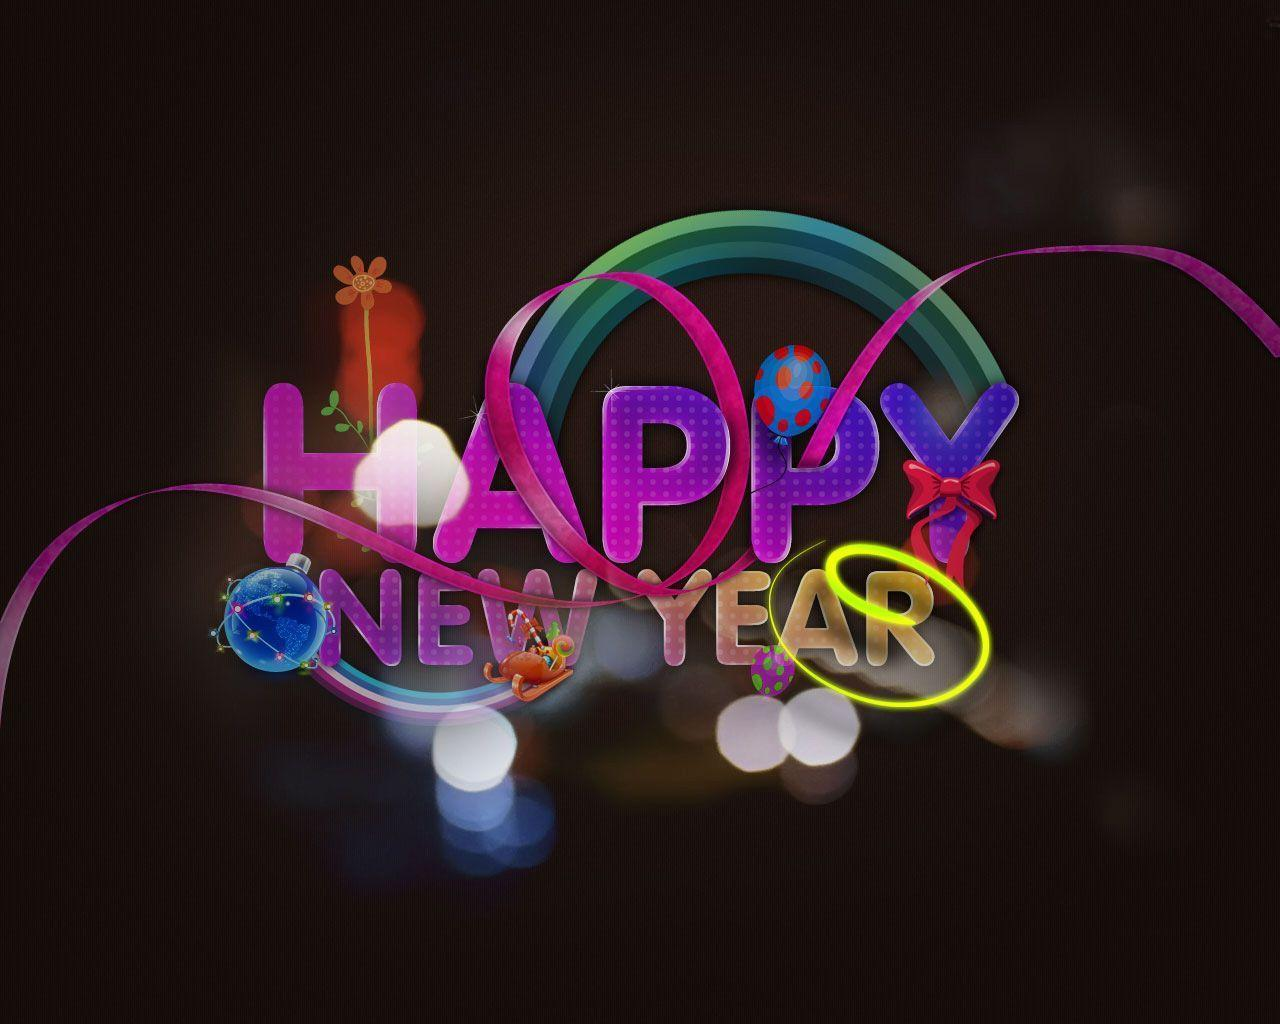 New Years Eve 2017 Wallpapers Free - Wallpaper Cave